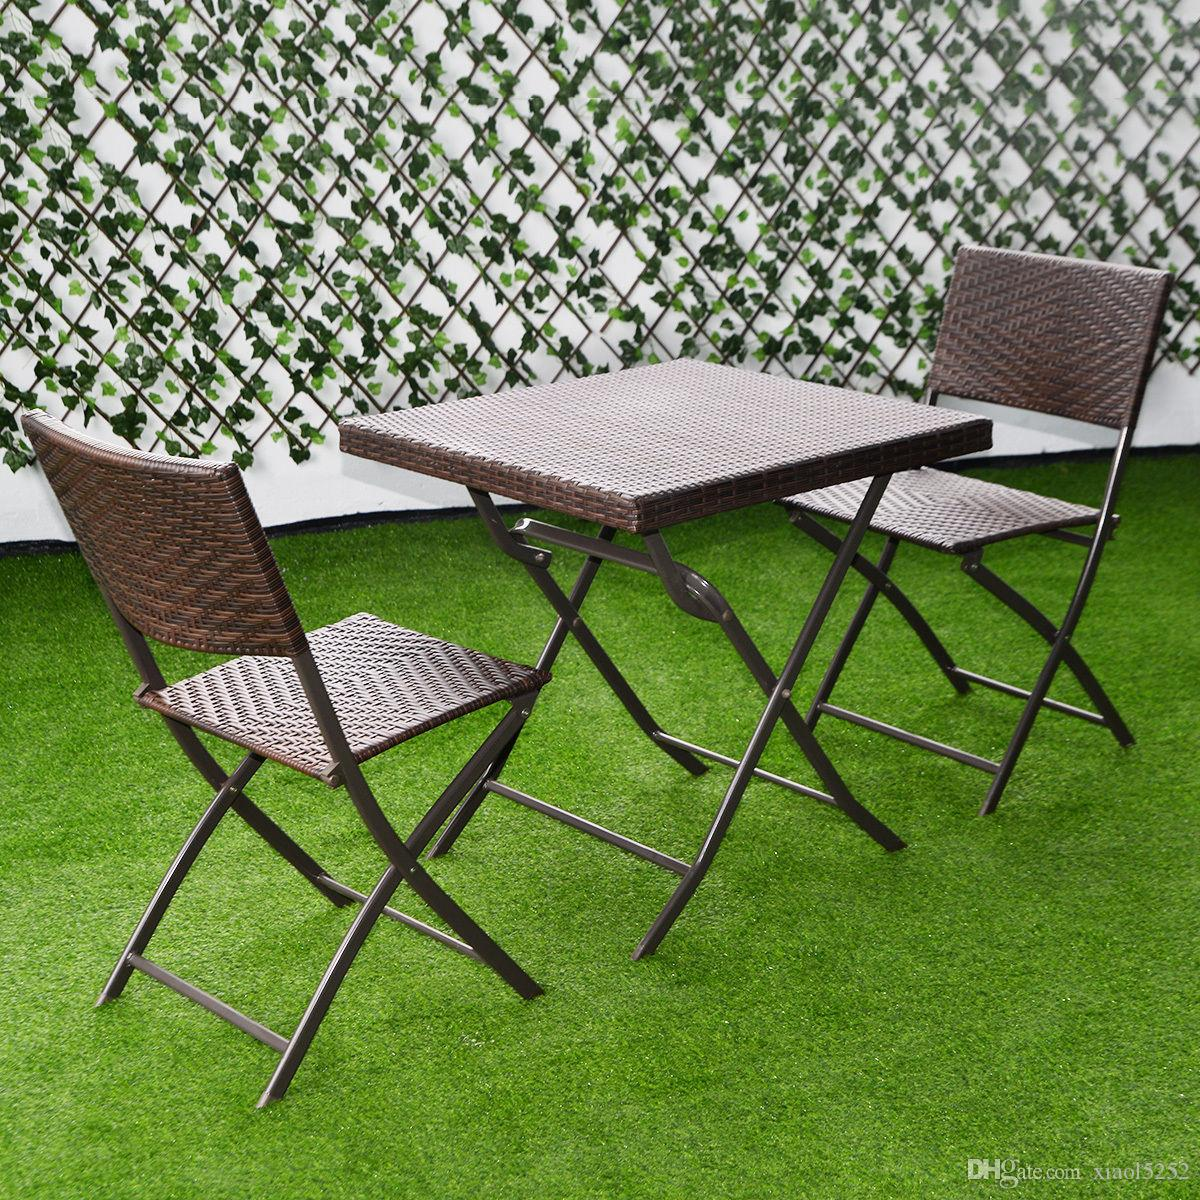 2019 outdoor folding table chair furniture set rattan wicker bistro patio brown from xiaol5252 90 46 dhgate com